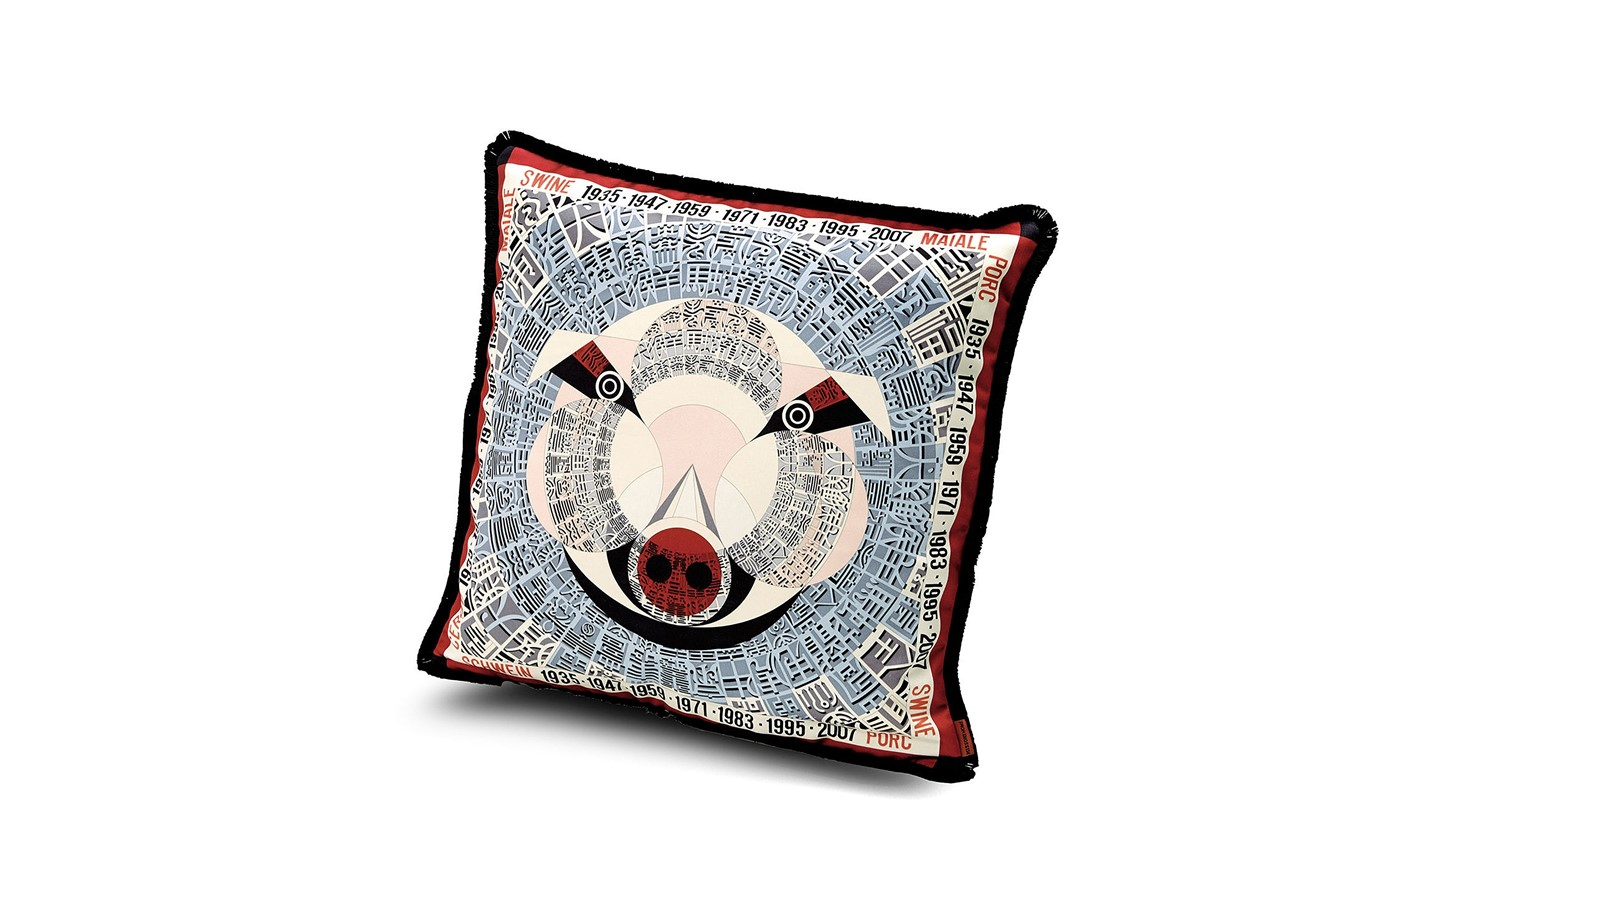 Celebrate the Year of the Pig in style - City